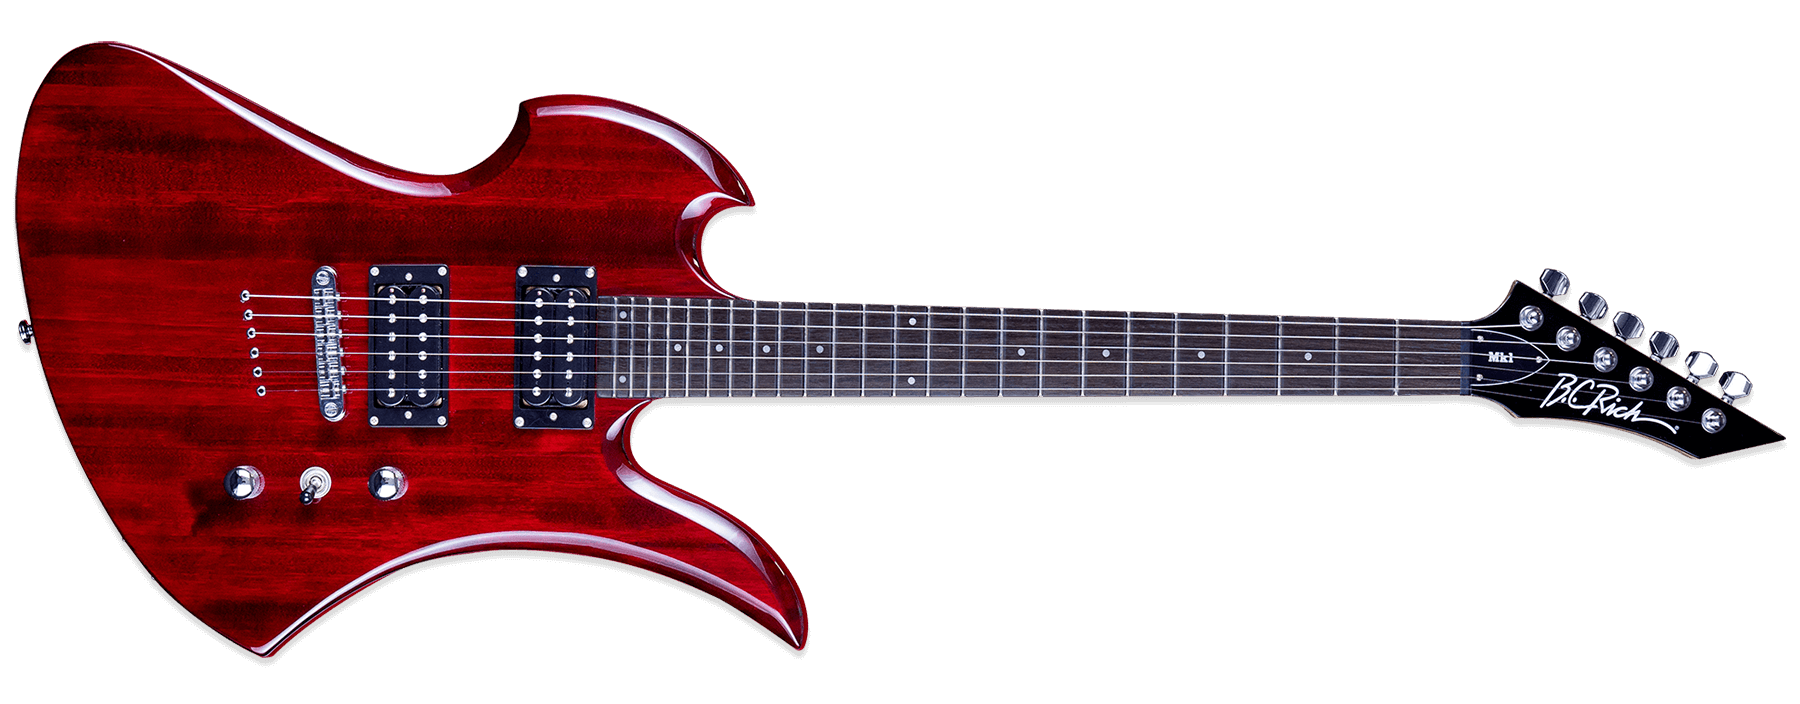 BC Rich Mk1 Mockingbird Cherry Red